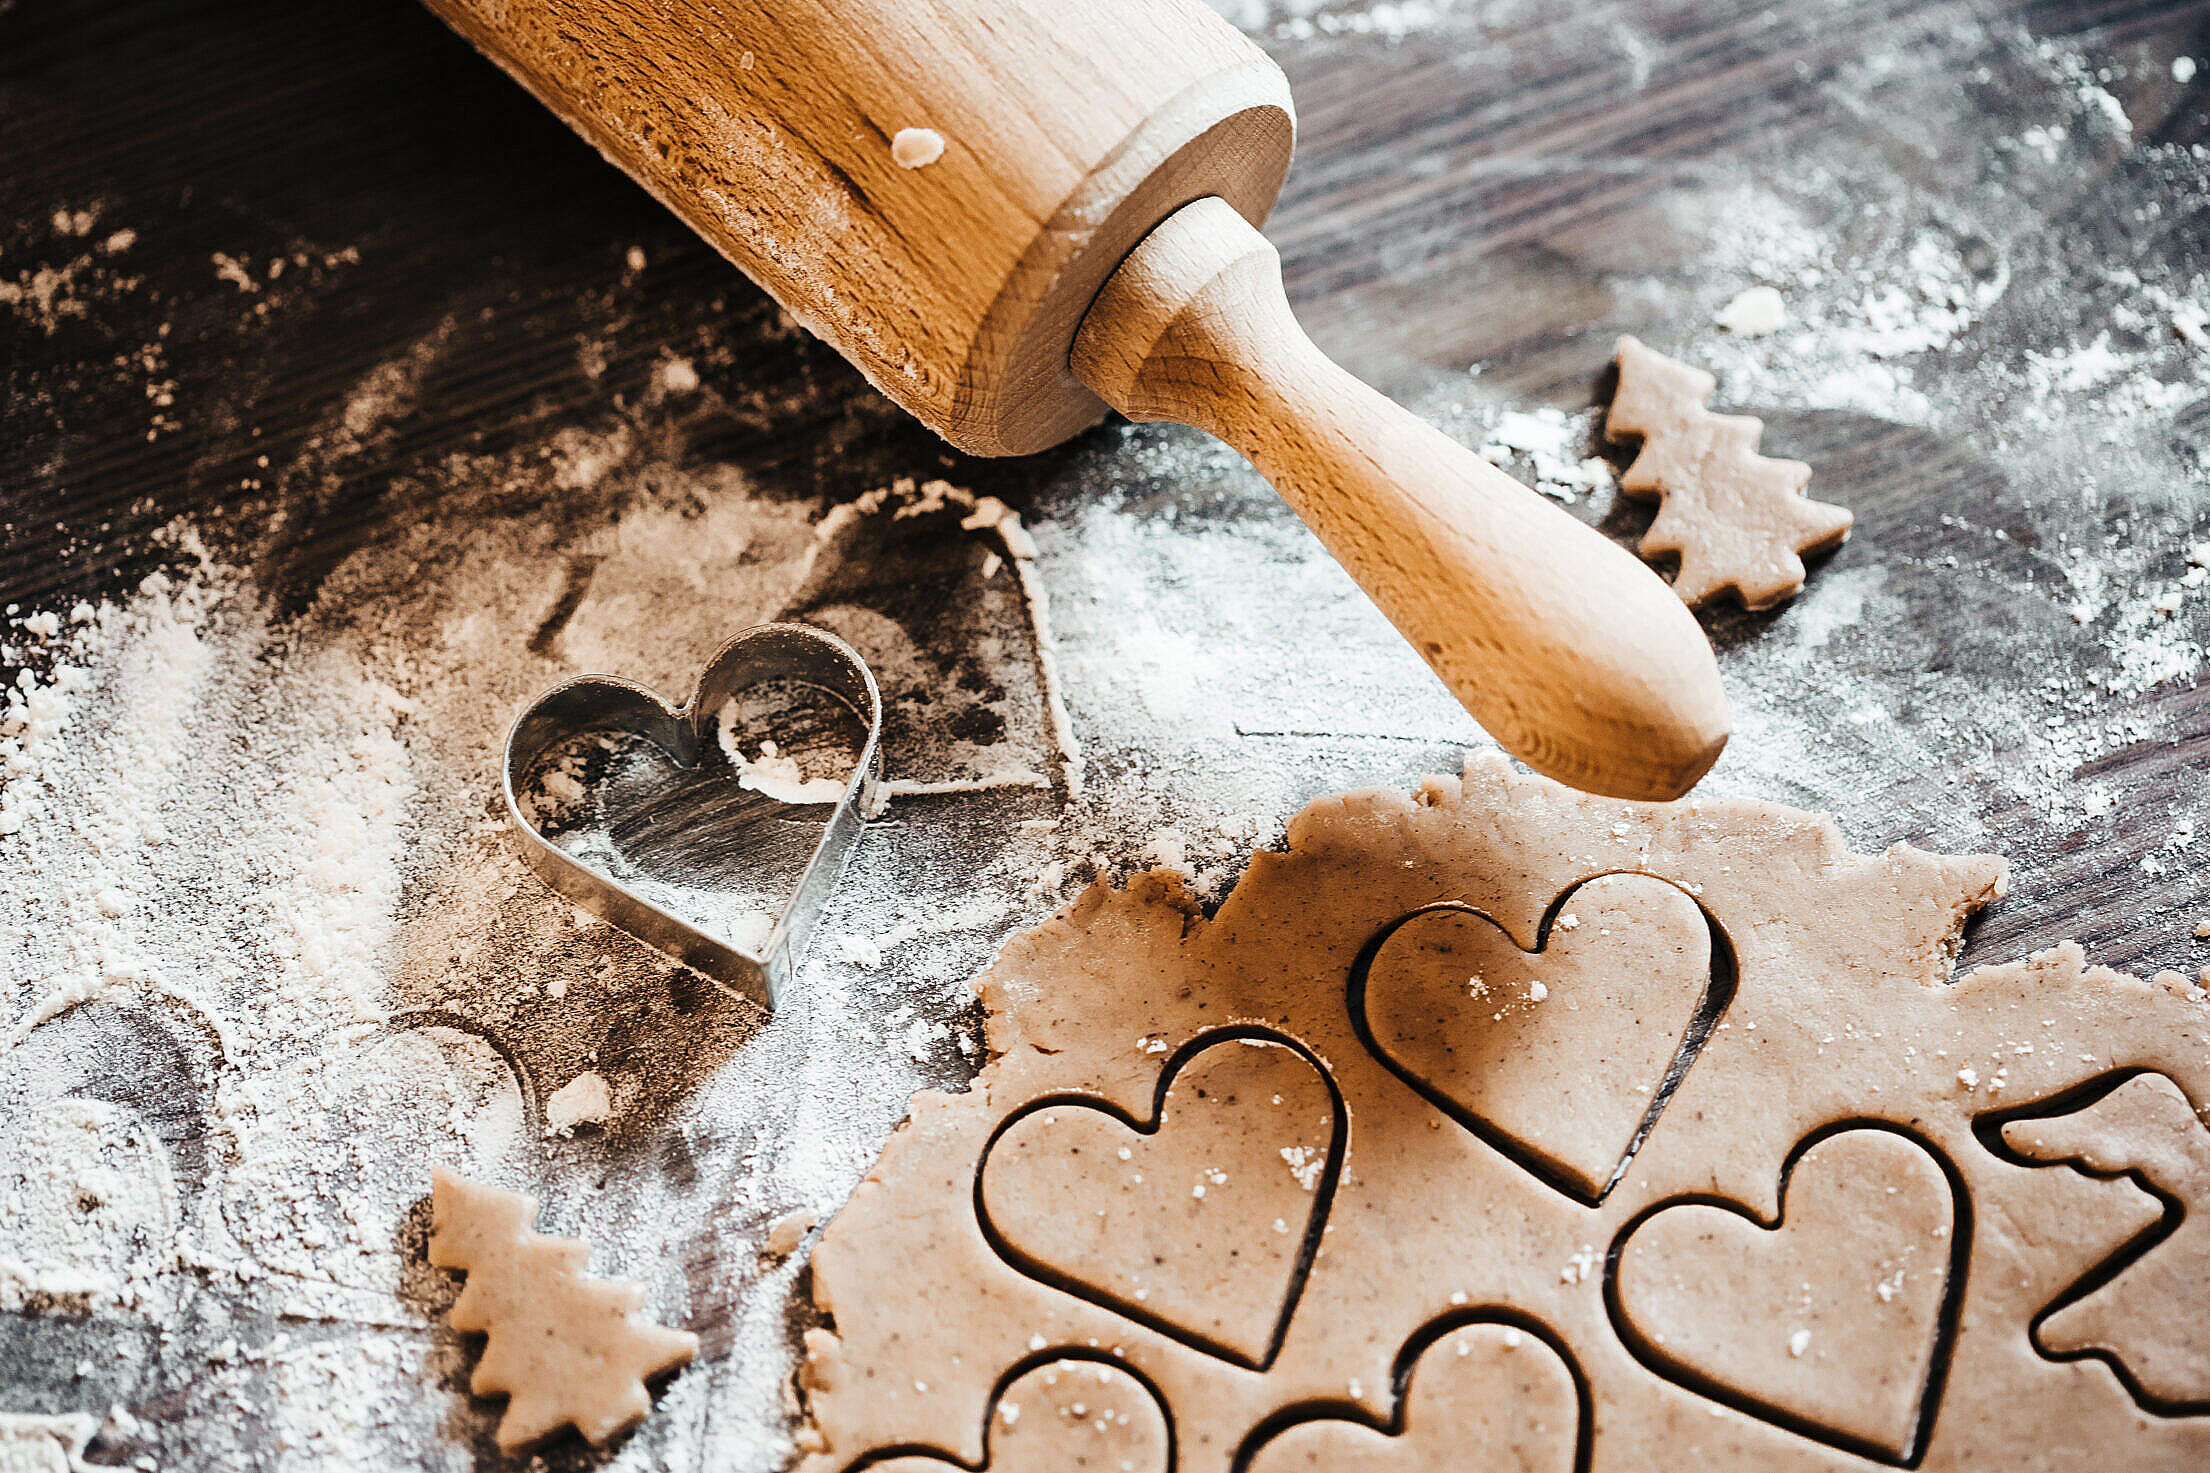 Download Preparing Christmas Sweets: Lovely Hearts Free Stock Photo